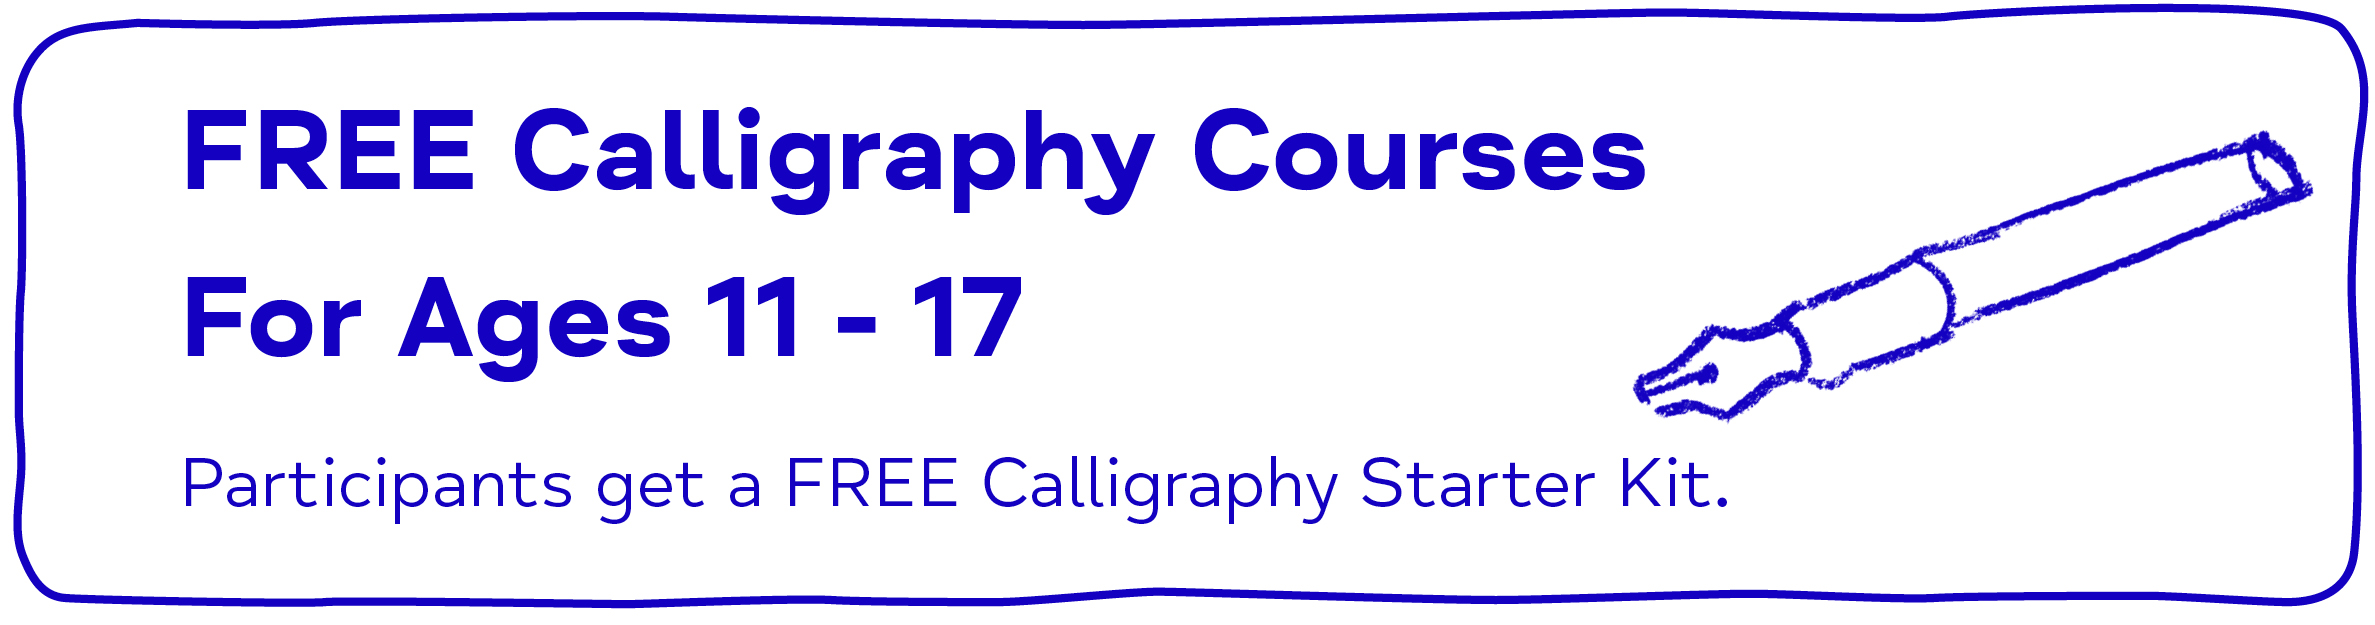 FREE Calligraphy Courses For Ages 11 - 17 Participants get a FREE Calligraphy Starter Kit.